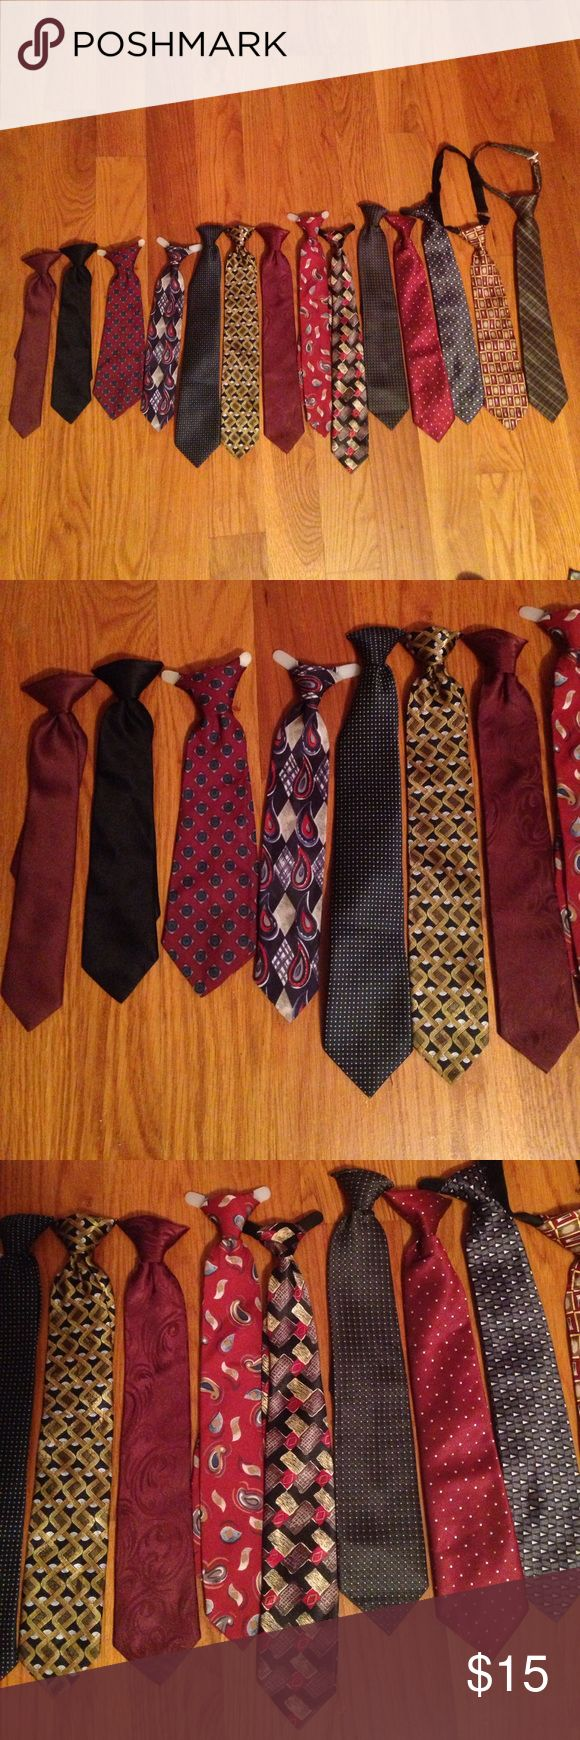 Bundle of Clip-on Ties Set of 14 ties all in great condition!! These are all clip-on ties. If you're interested in some and not all then I can make a separate listing just let me know!! Accessories Ties